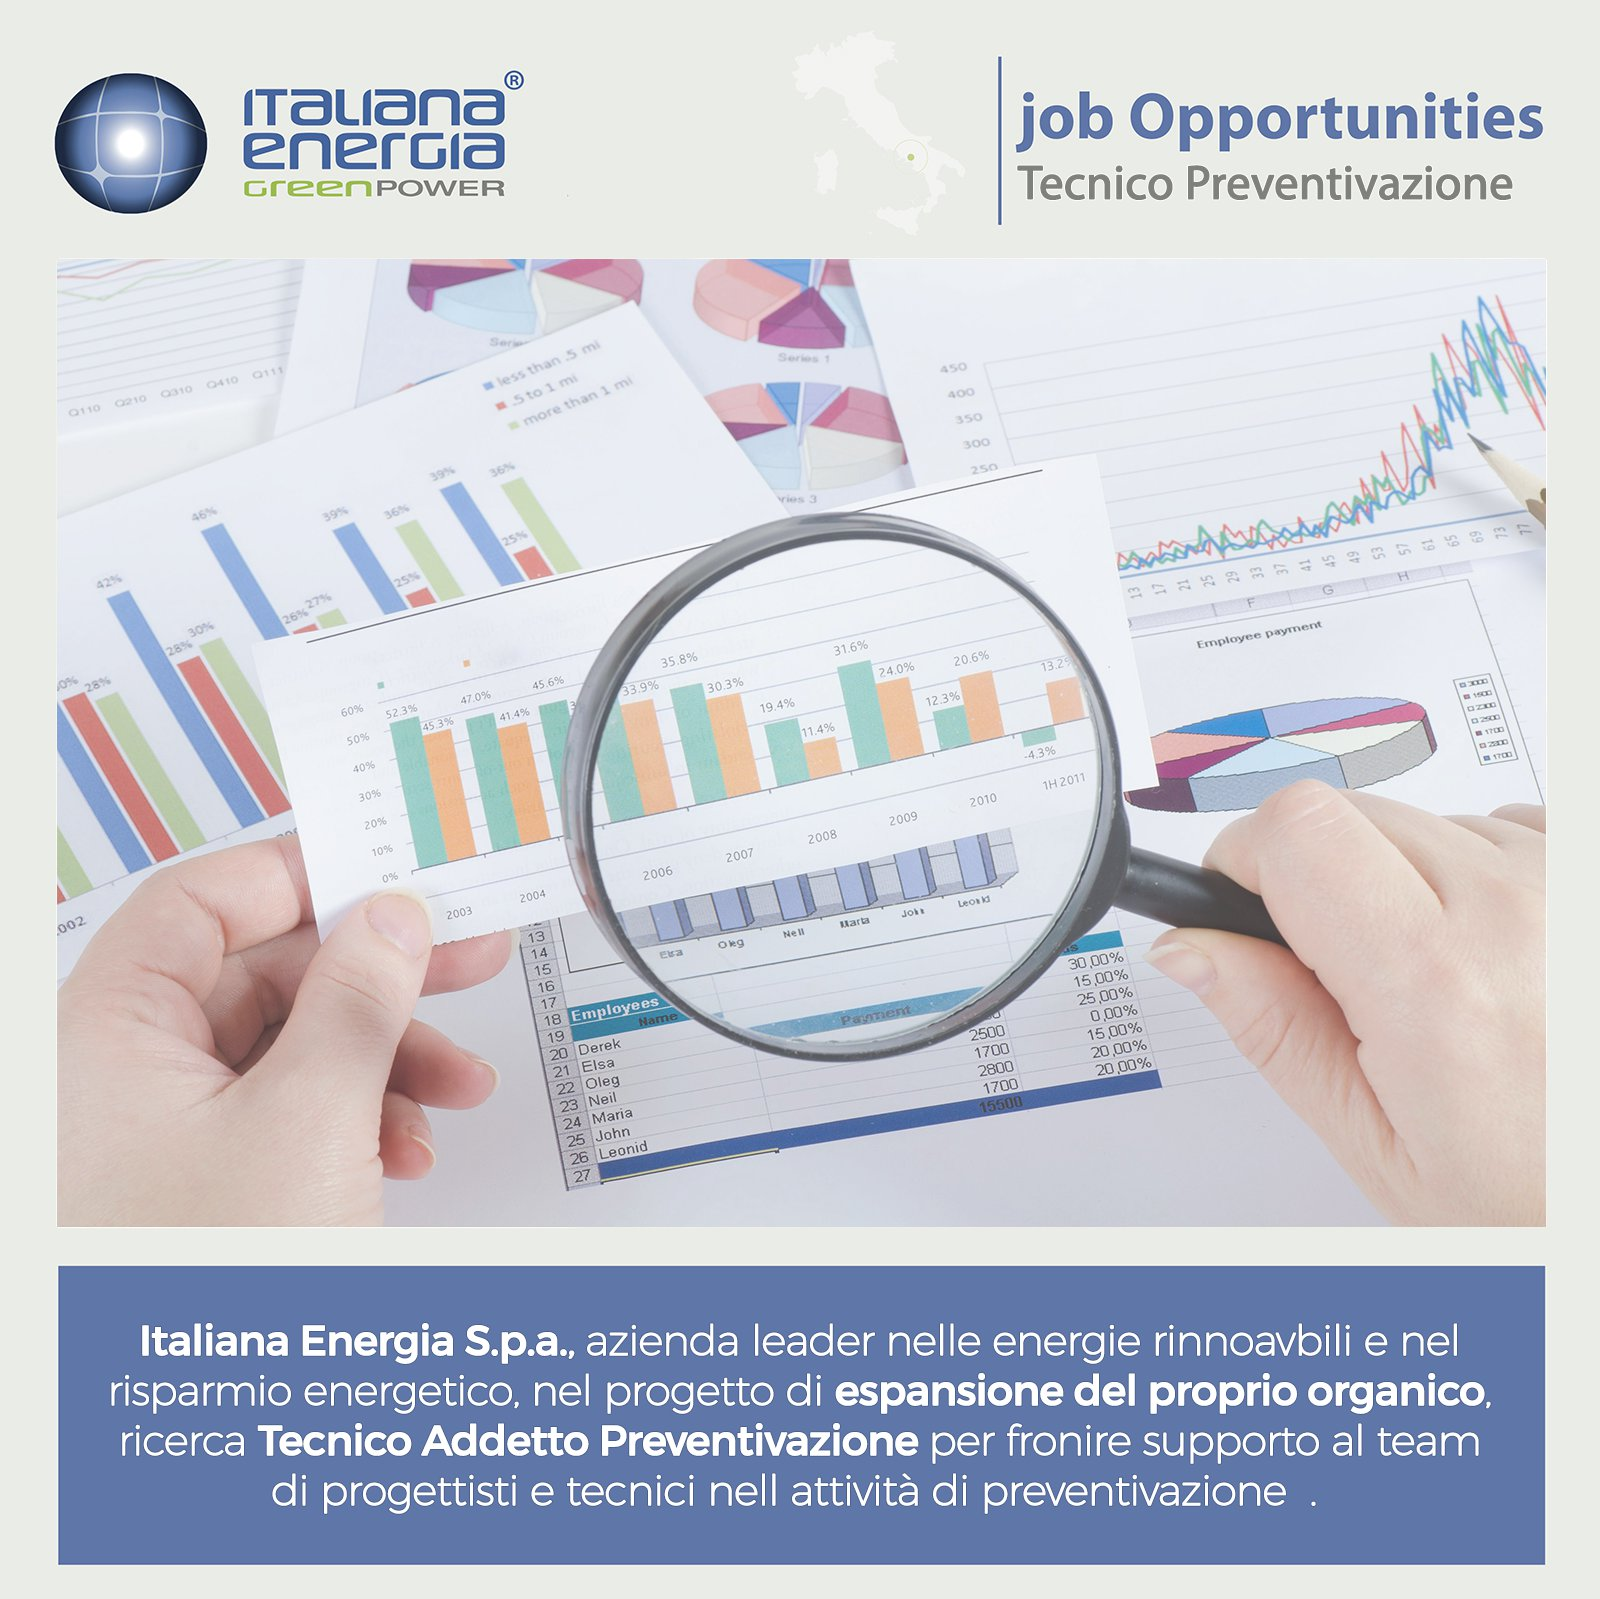 tecnico_preventivazione_italaiana_energia_job opportunities